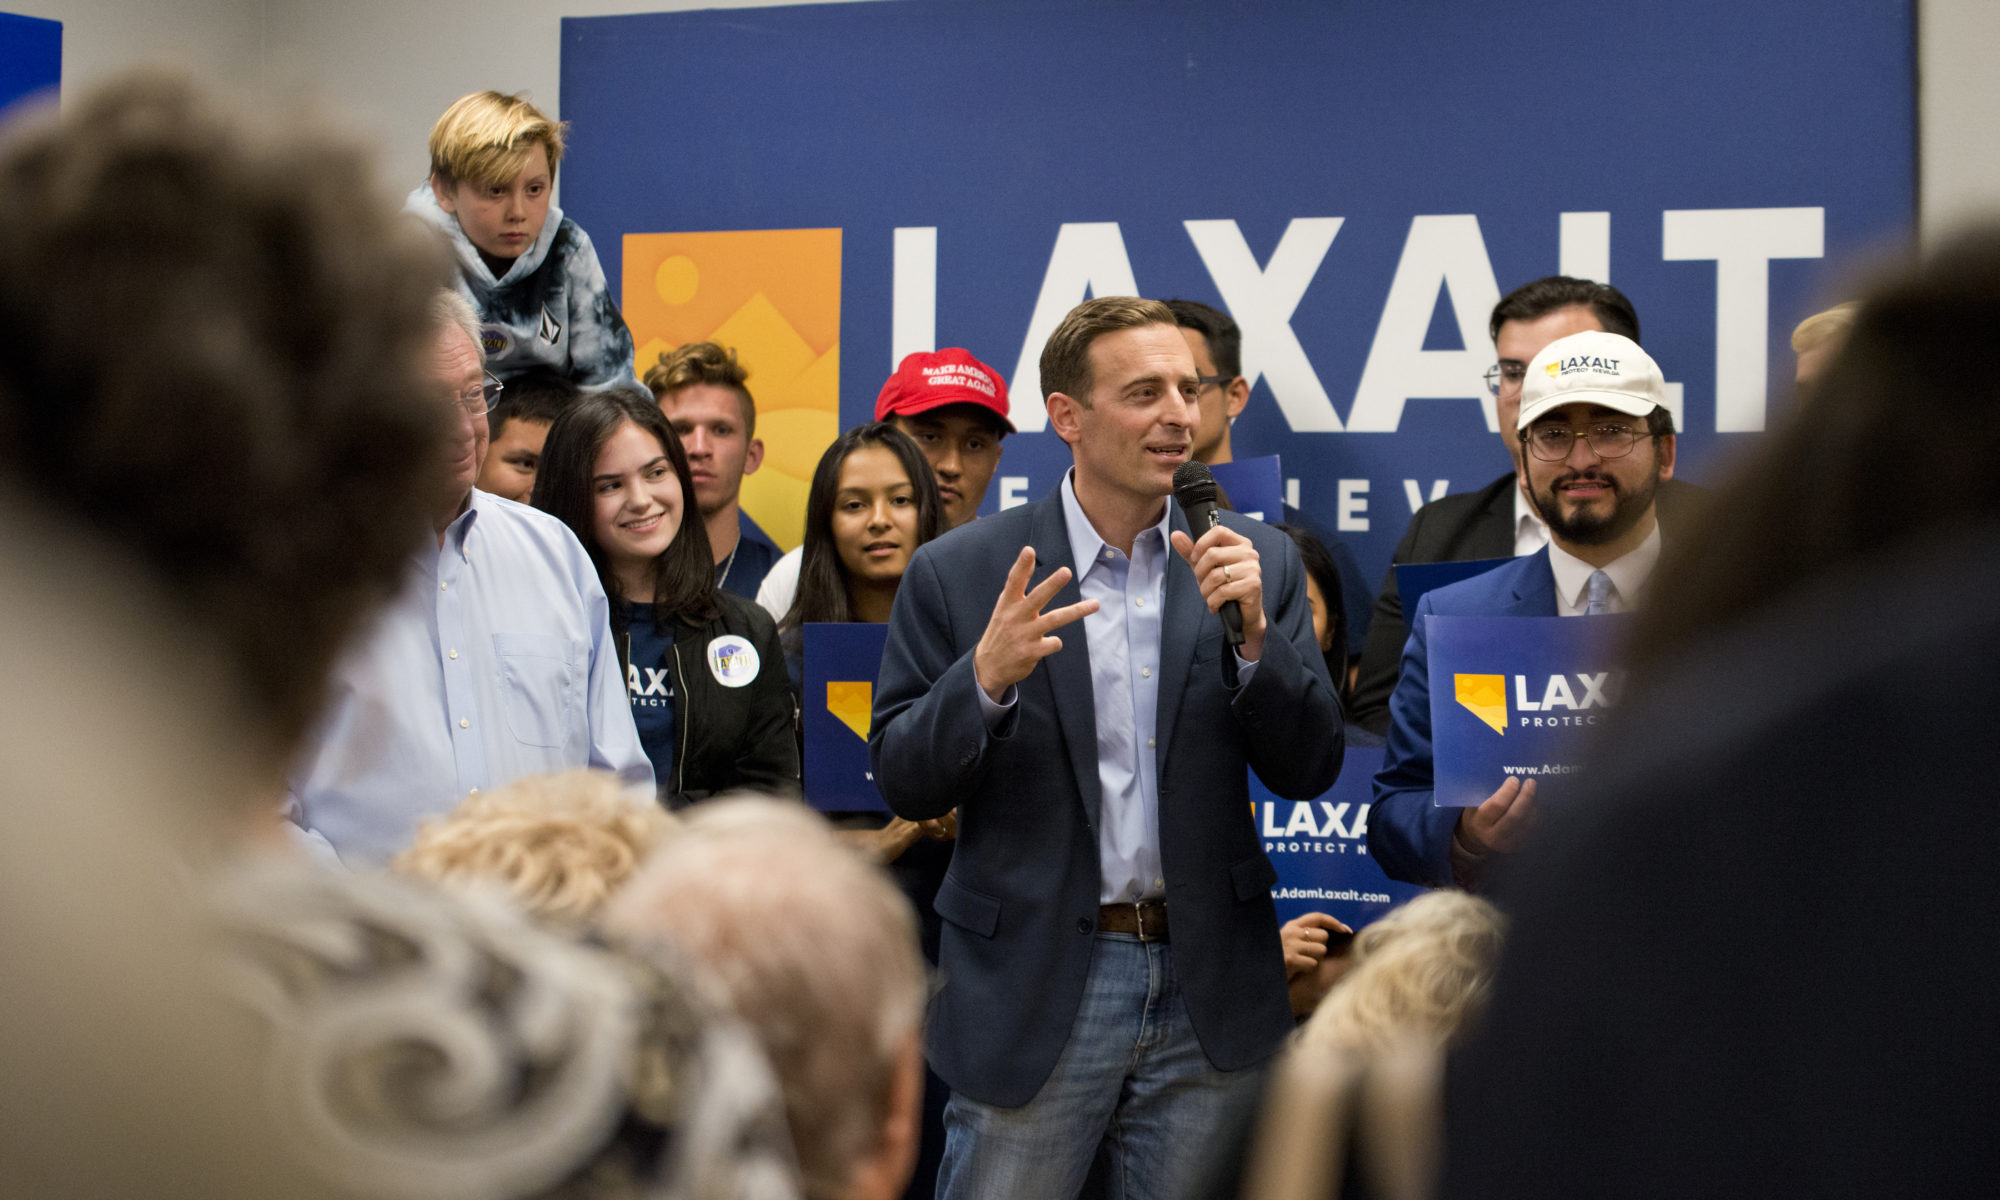 Republican candidate for governor Attorney General Adam Laxalt speaks during a get out the vote event at the Laxalt field office in Las Vegas